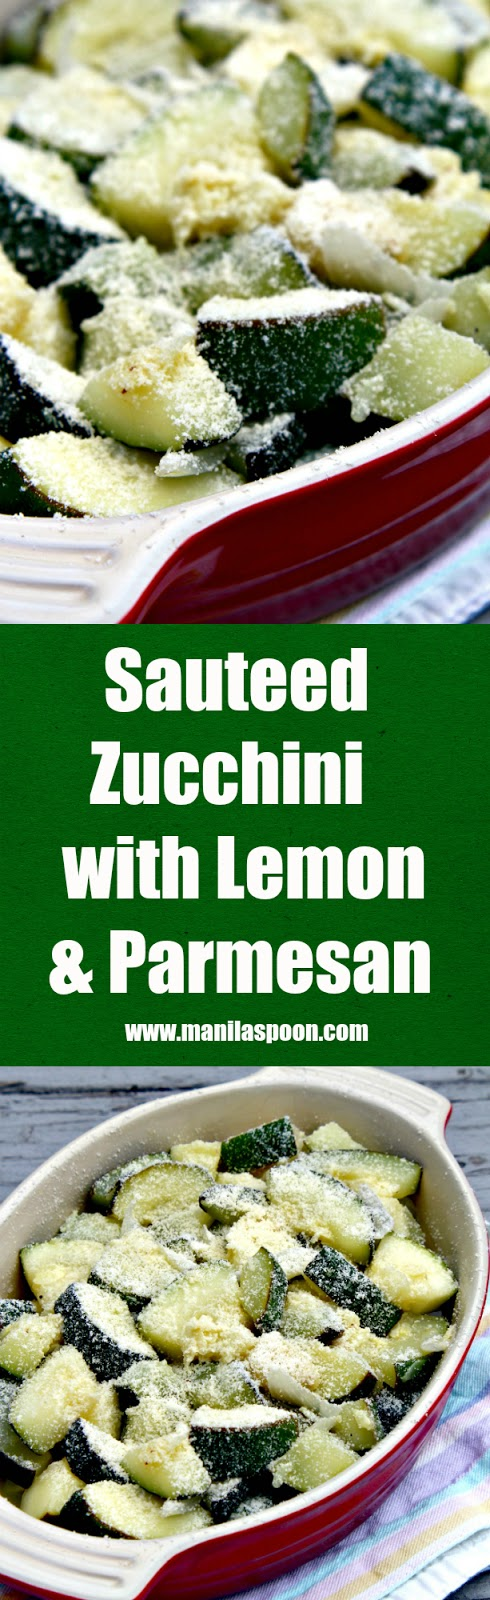 A quick, delicious and healthy way to use up all these summer squash is to make Sautéed Zucchini with Lemon and Parmesan!  | manilaspoon.com